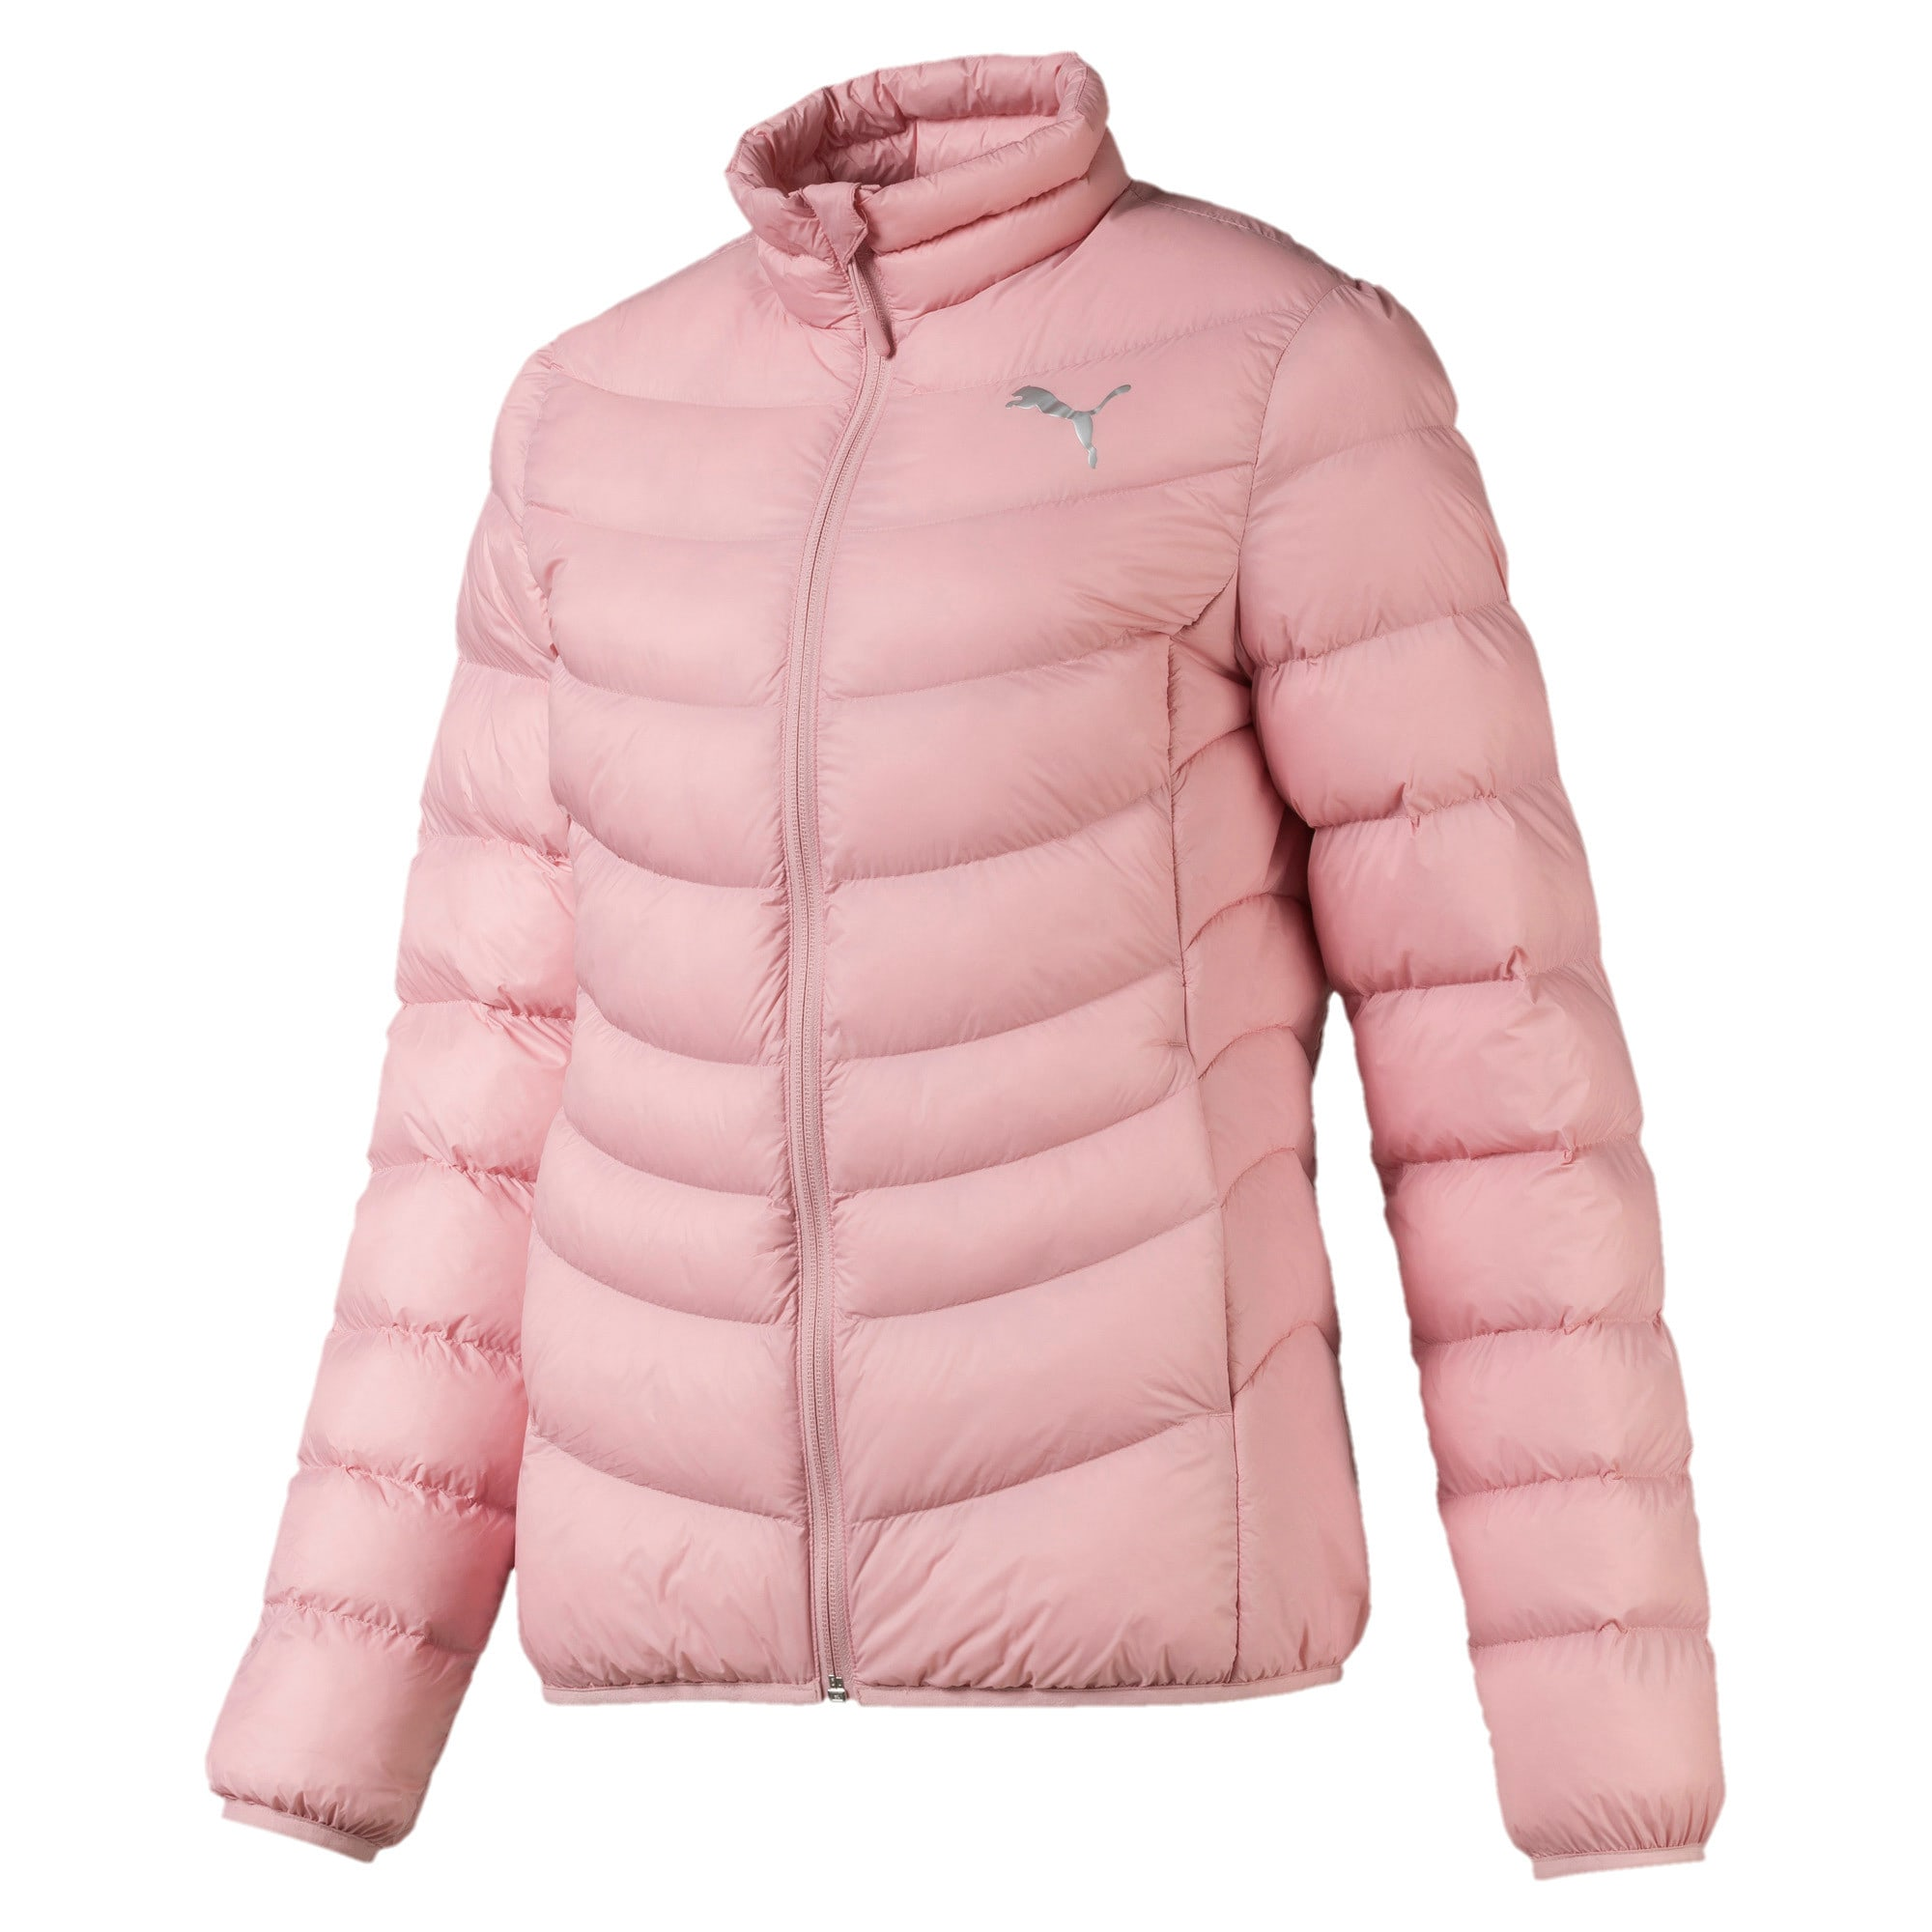 Thumbnail 4 of Ultralight warmCELL Women's Jacket, Bridal Rose, medium